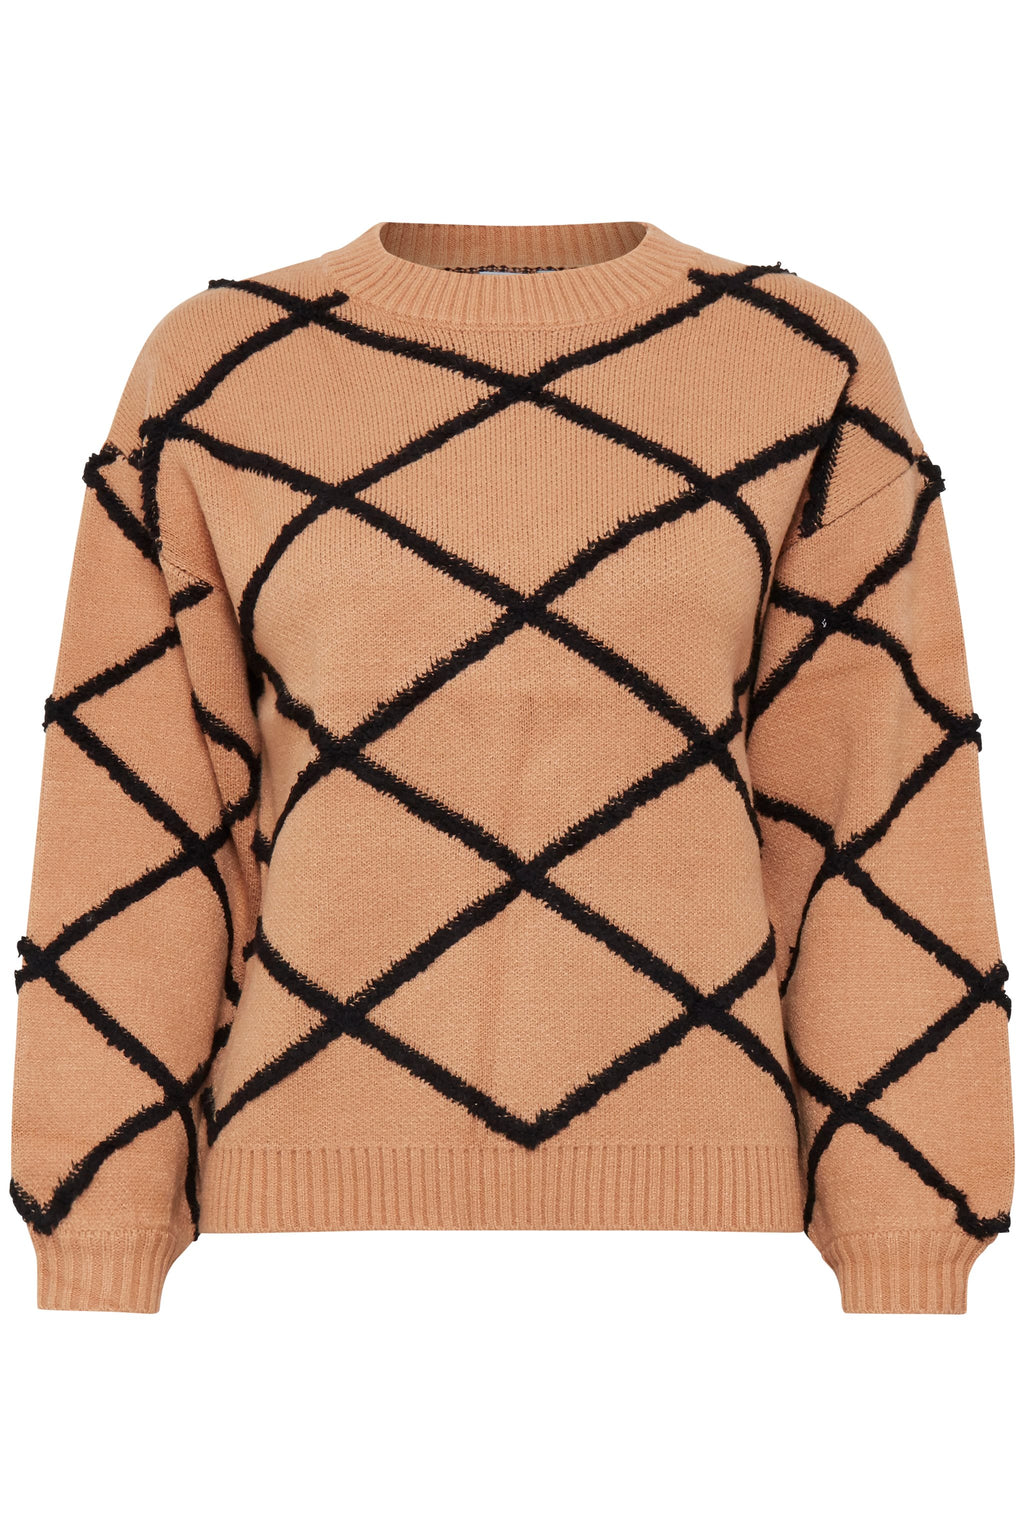 FILIA knitted jumper